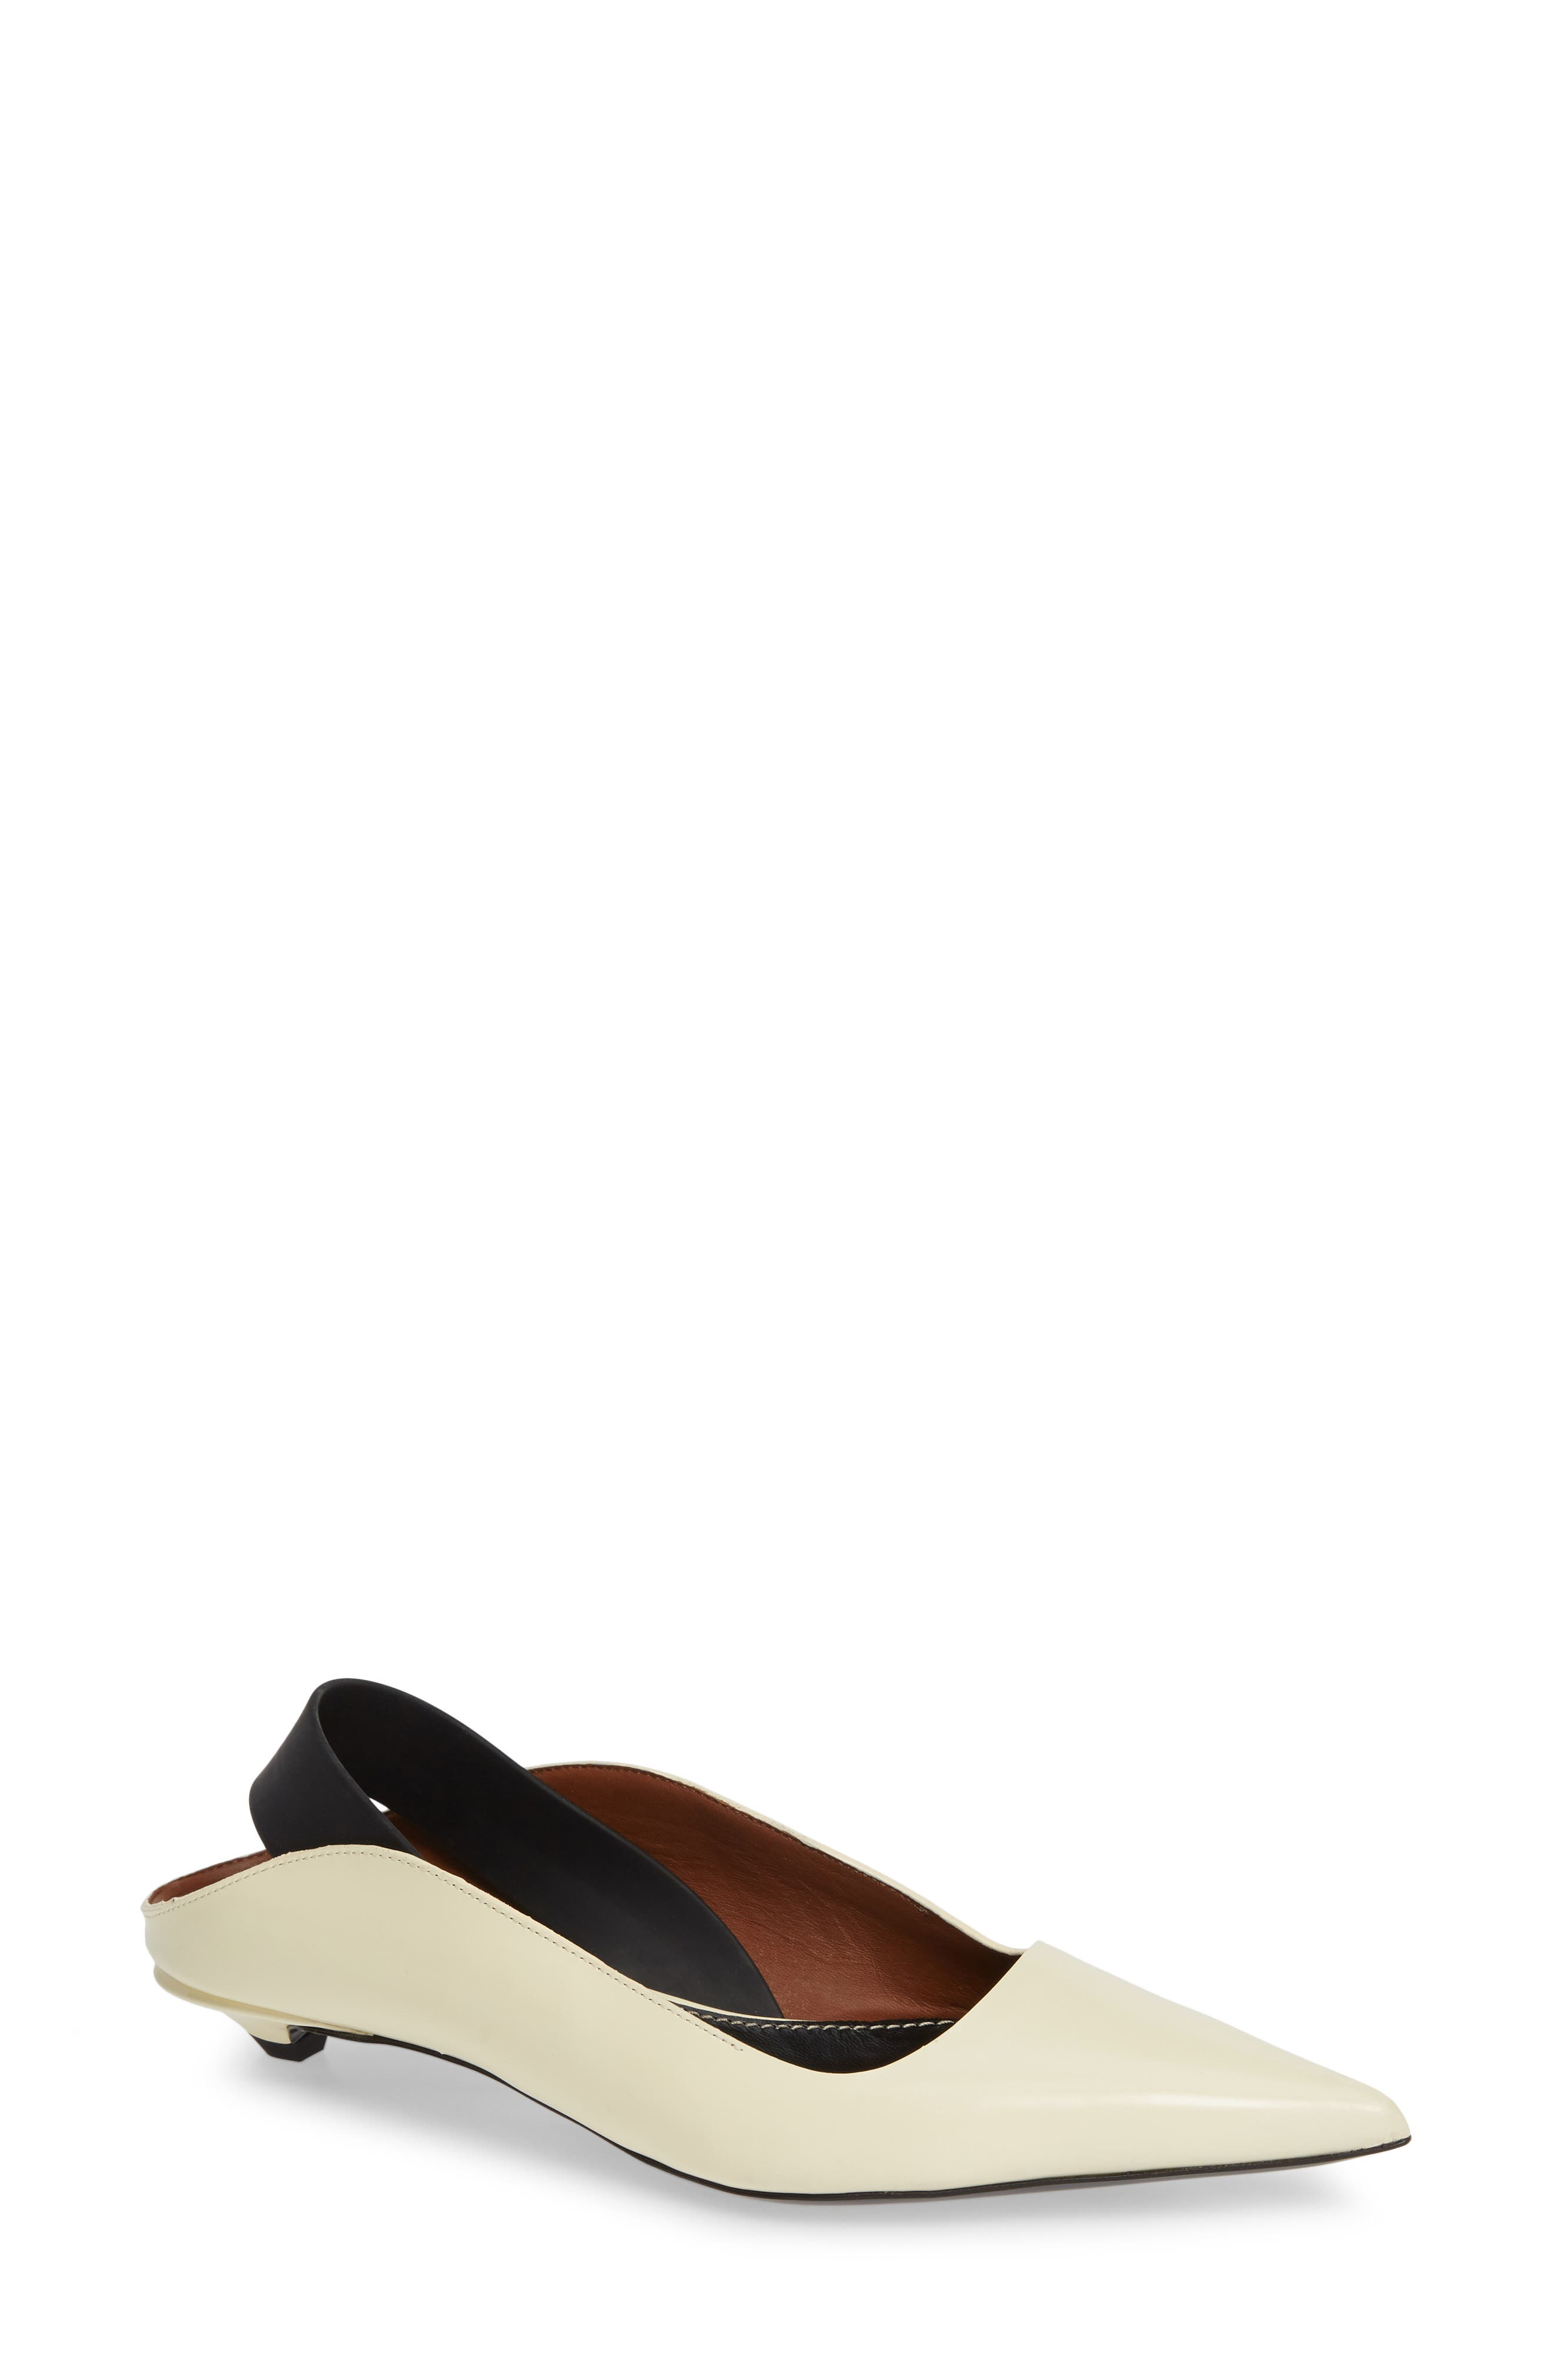 PROENZA SCHOULER,                             Wave Pointy Toe Pump,                             Main thumbnail 1, color,                             WHITE